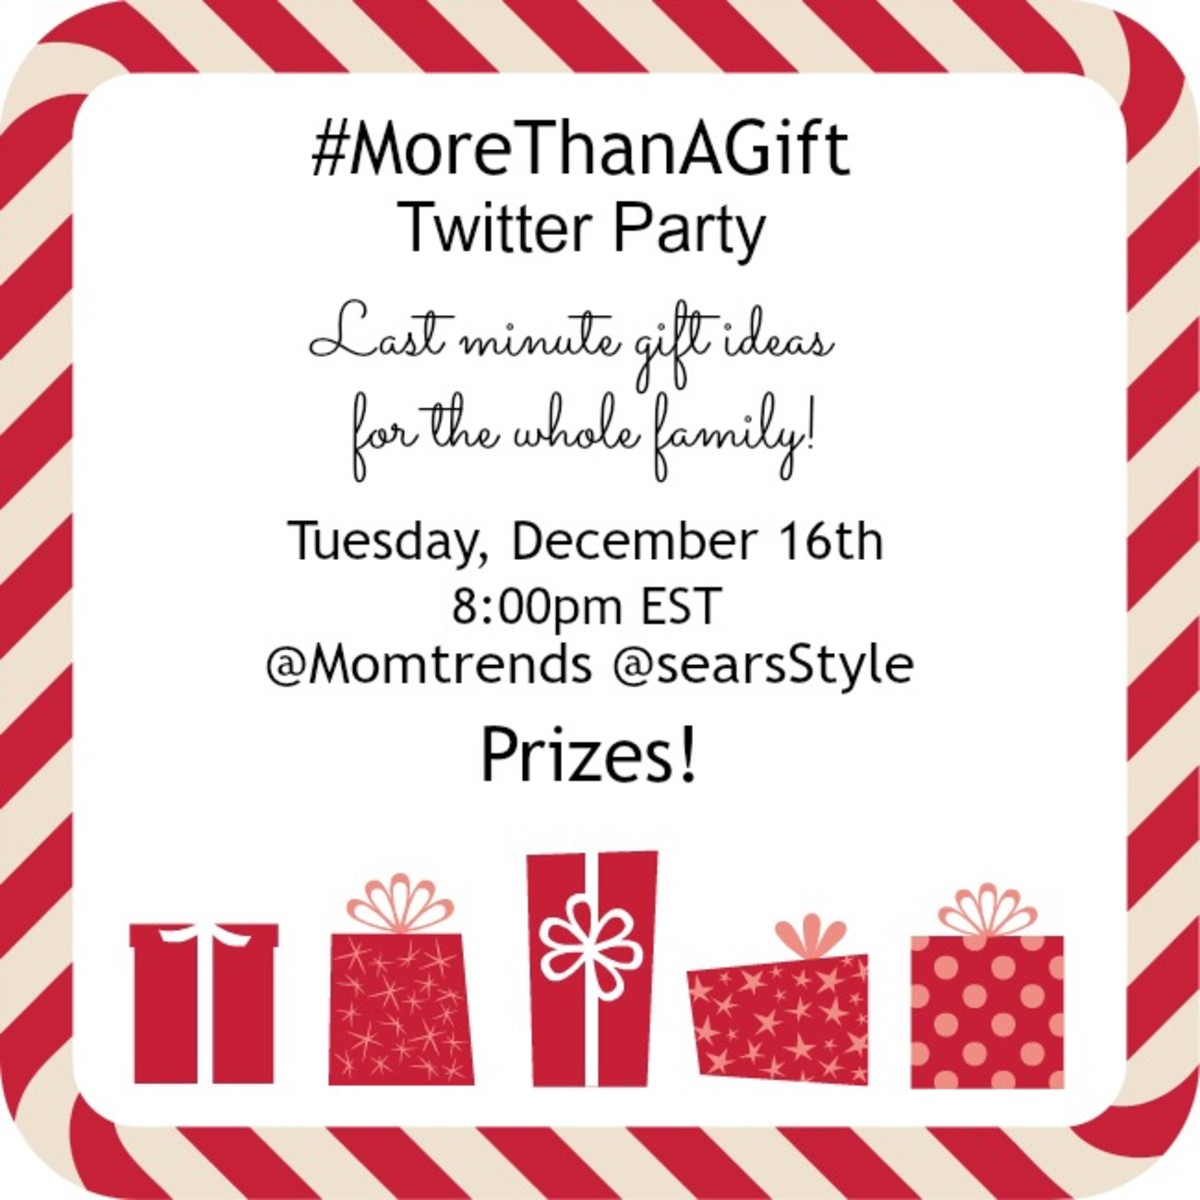 morethanagifttwitterparty